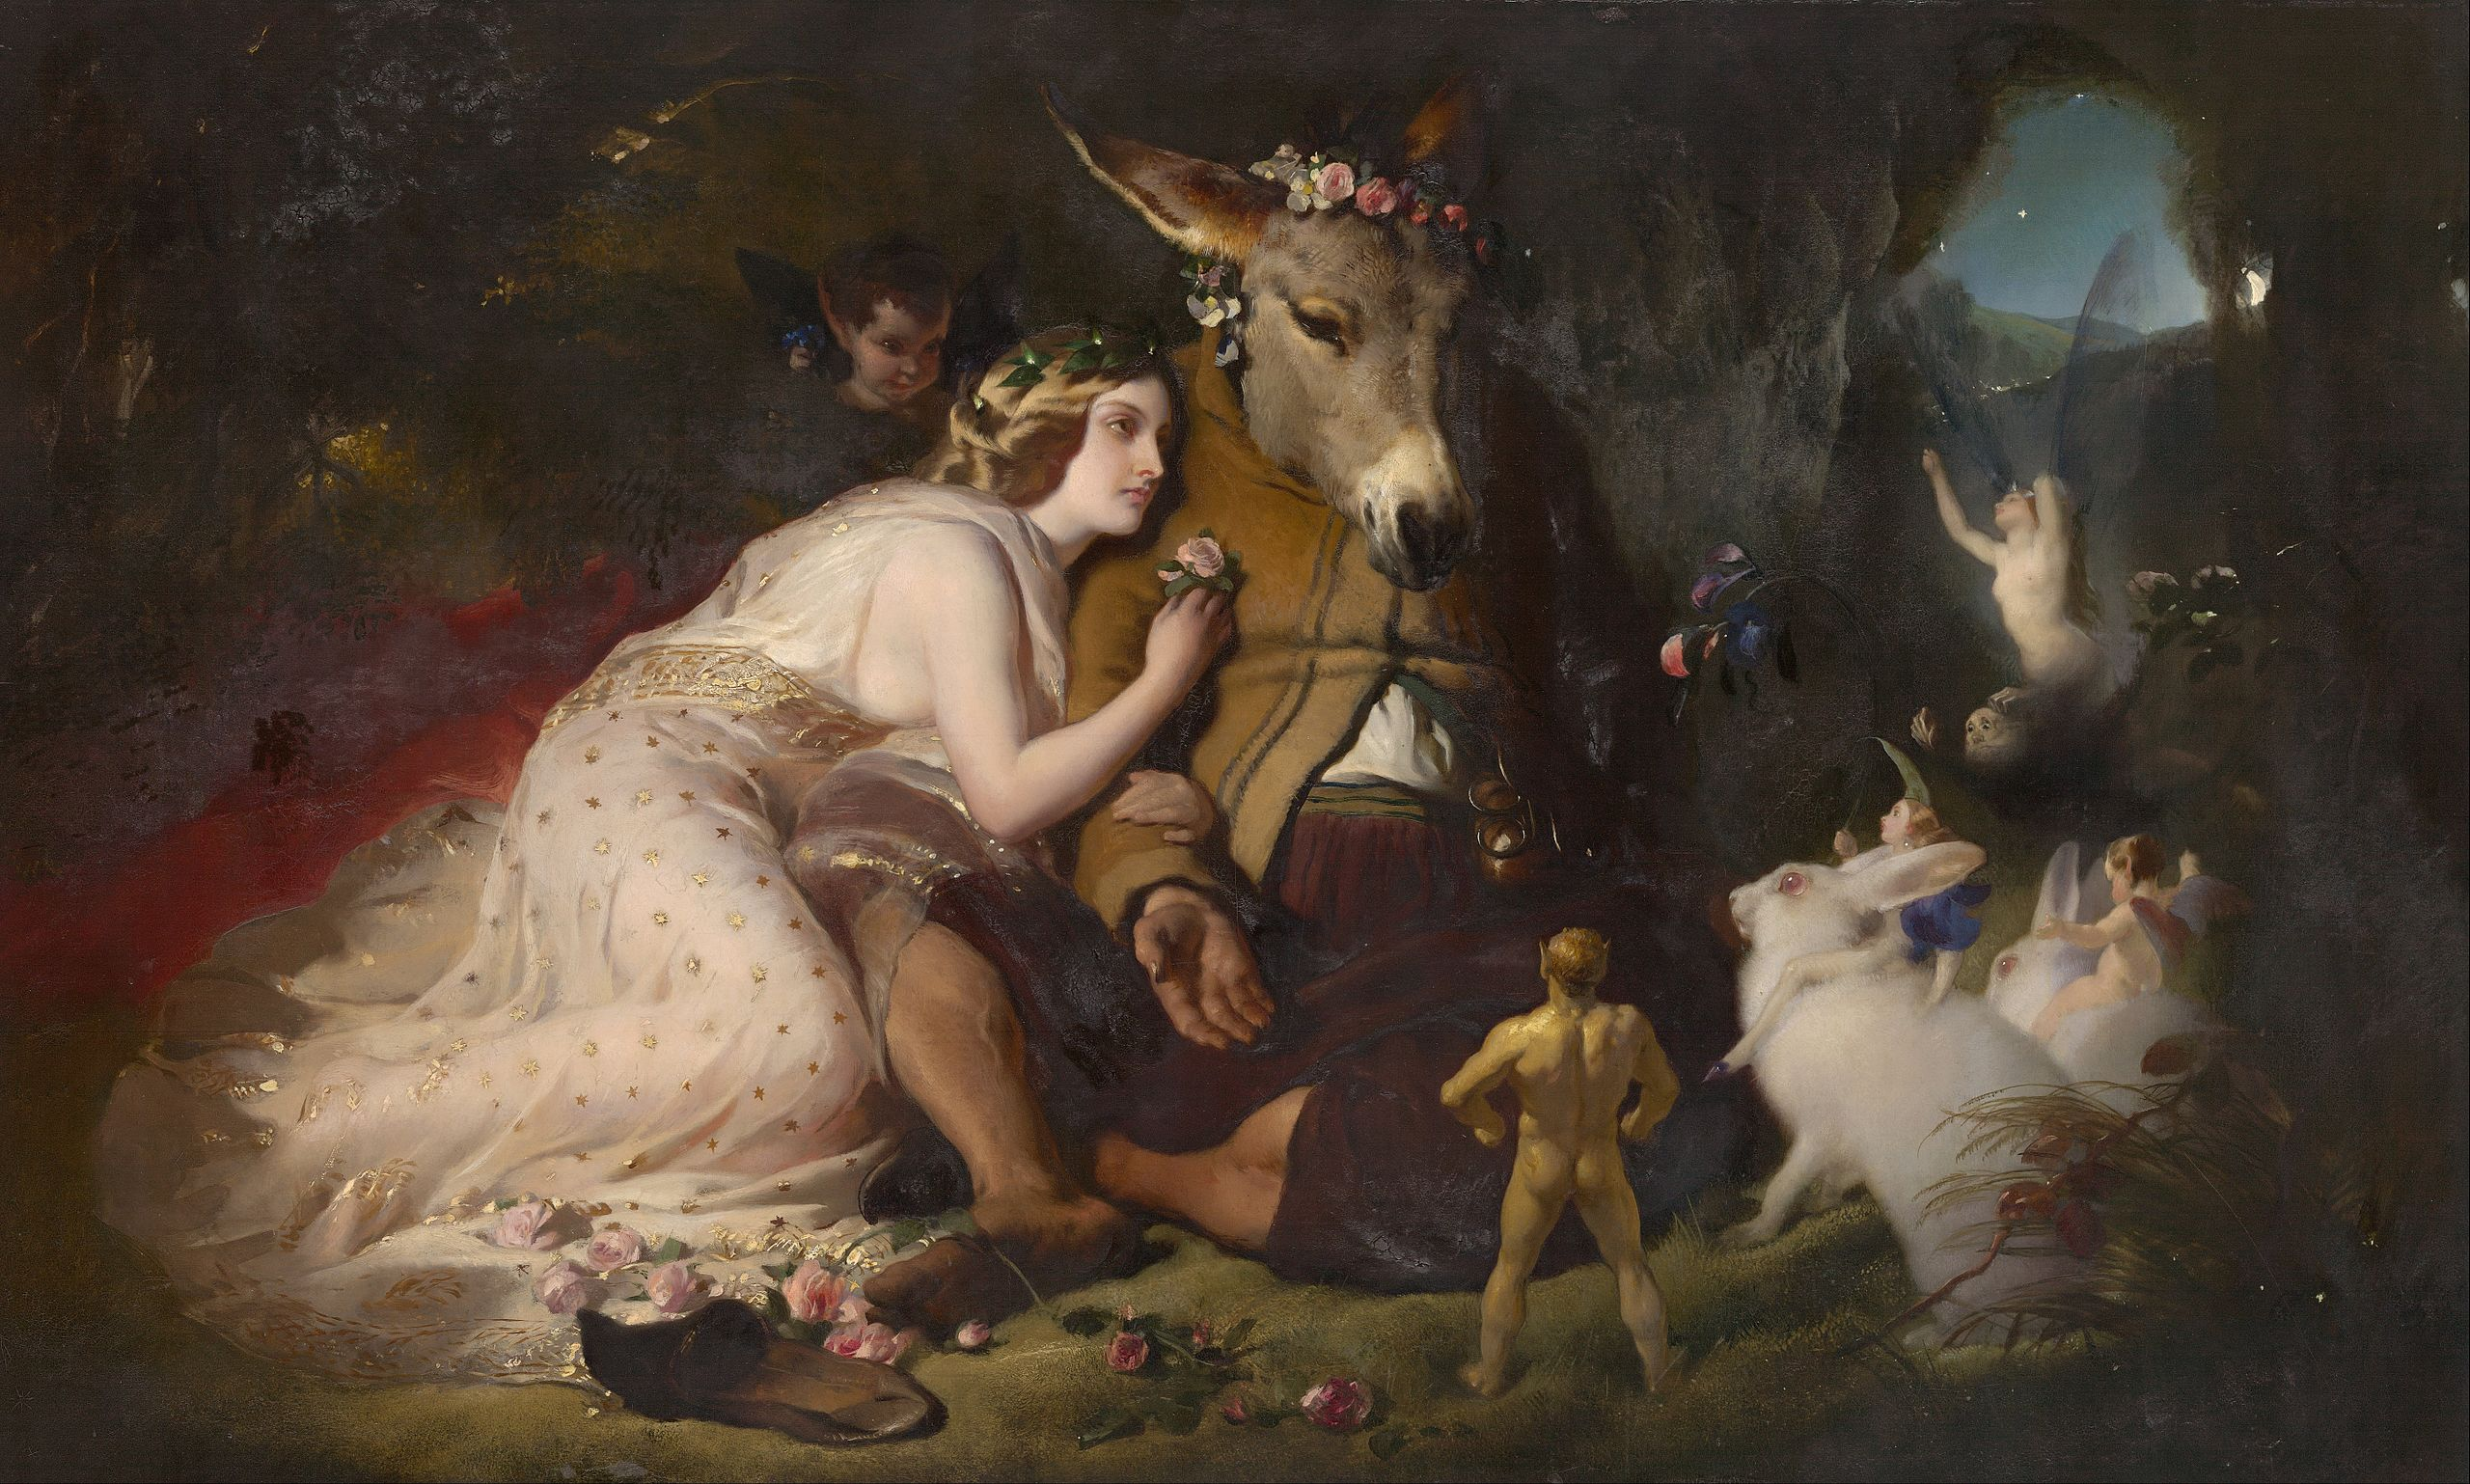 By Edwin Henry Landseer - qAFcRhWcRy2Zeg at Google Cultural Institute maximum zoom level, Public Domain, https://commons.wikimedia.org/w/index.php?curid=21988409